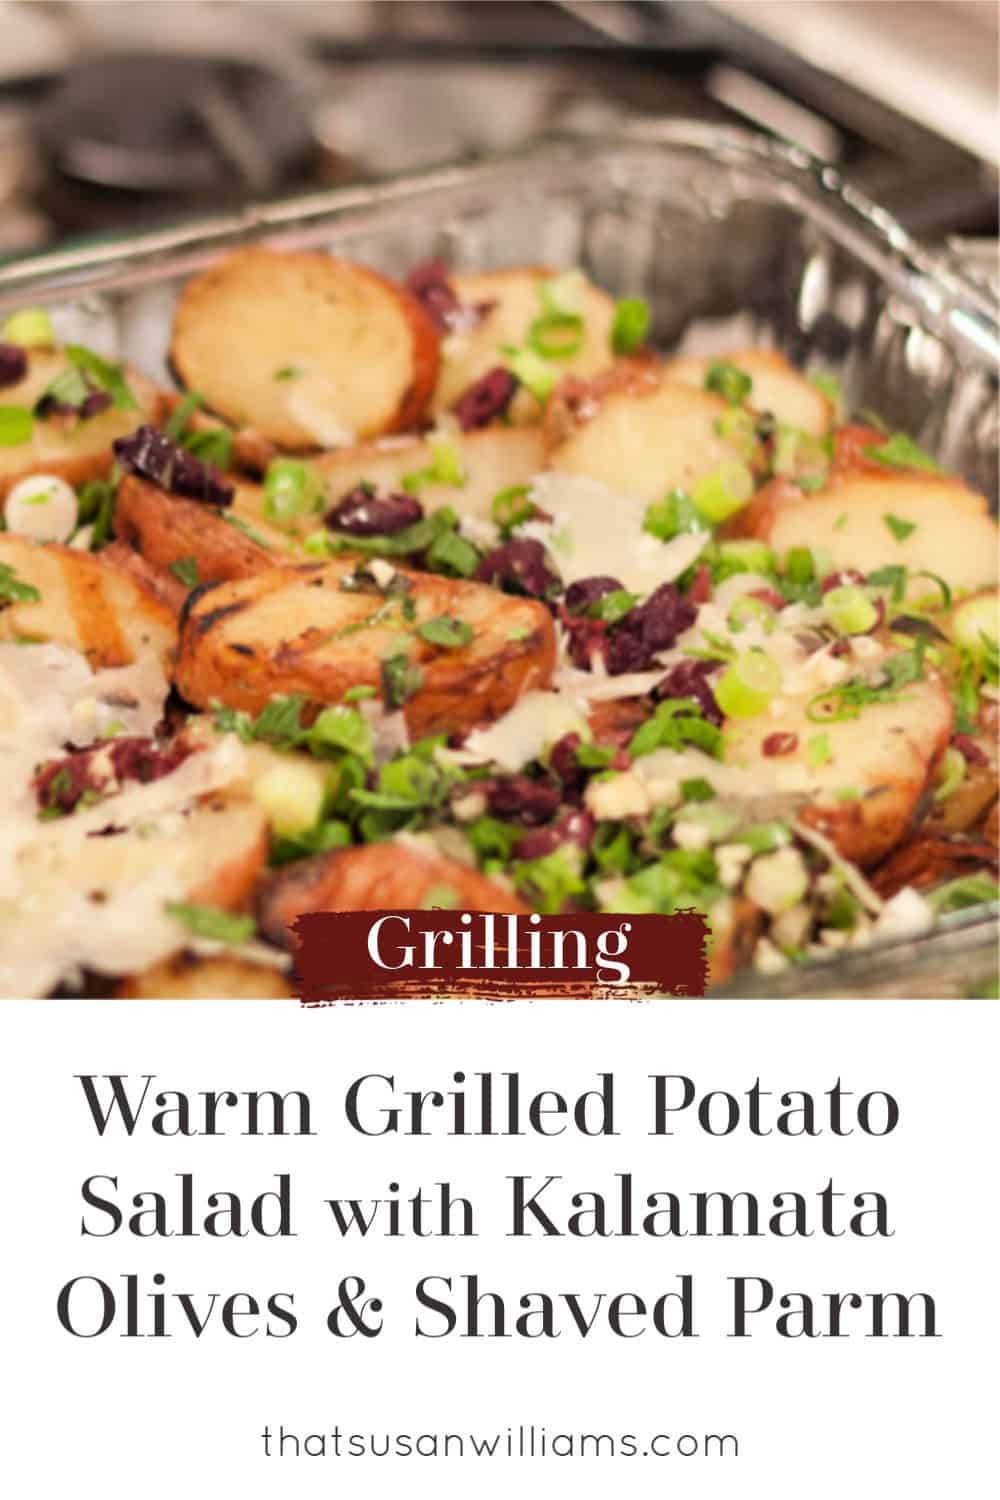 Warm Grilled Potato Salad with Kalamata Olives and Shaved Parm